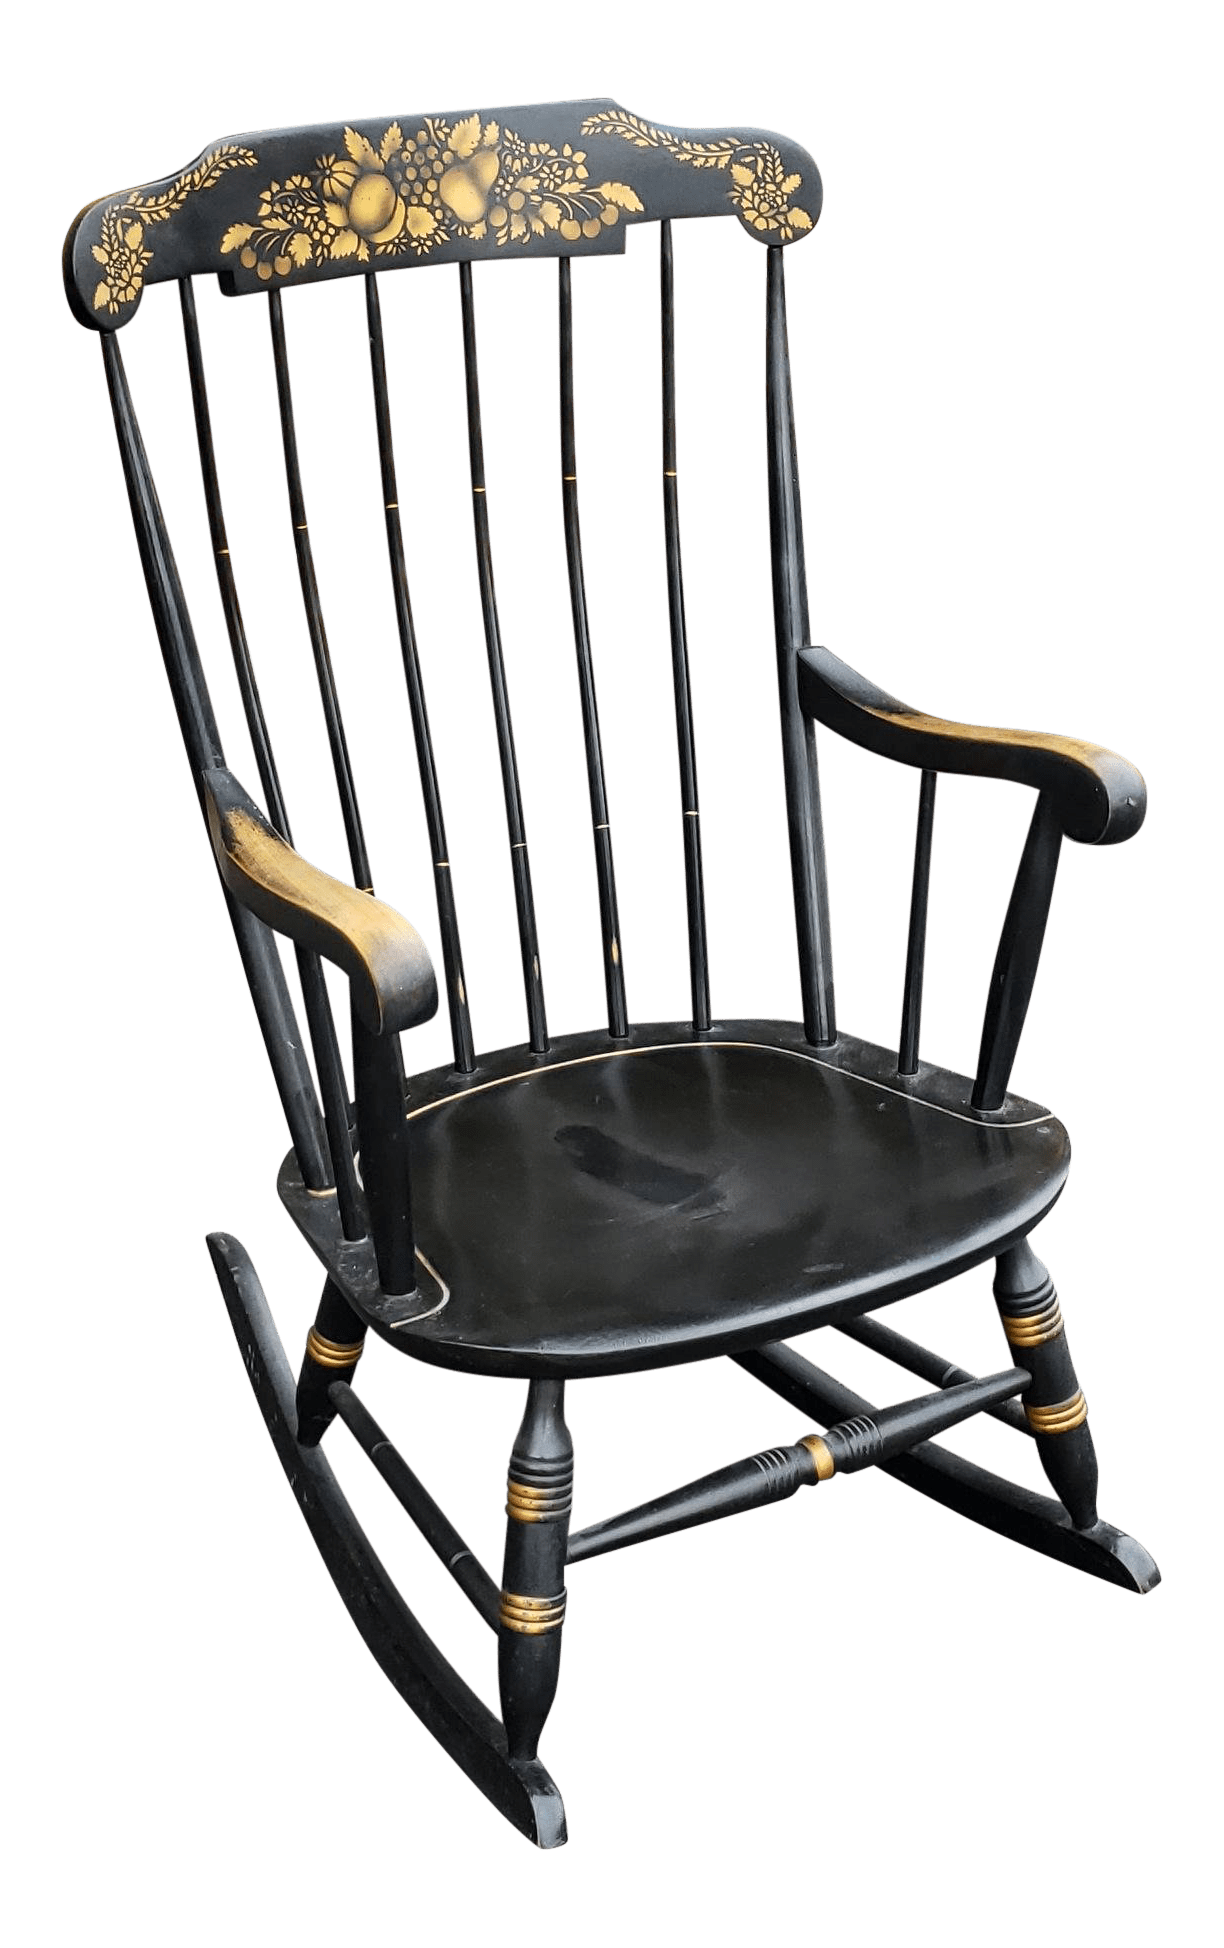 black rocking chairs best affordable office chair 2018 vintage used rustic chairish 1970s hitchcock style painted nichols stone co rocker